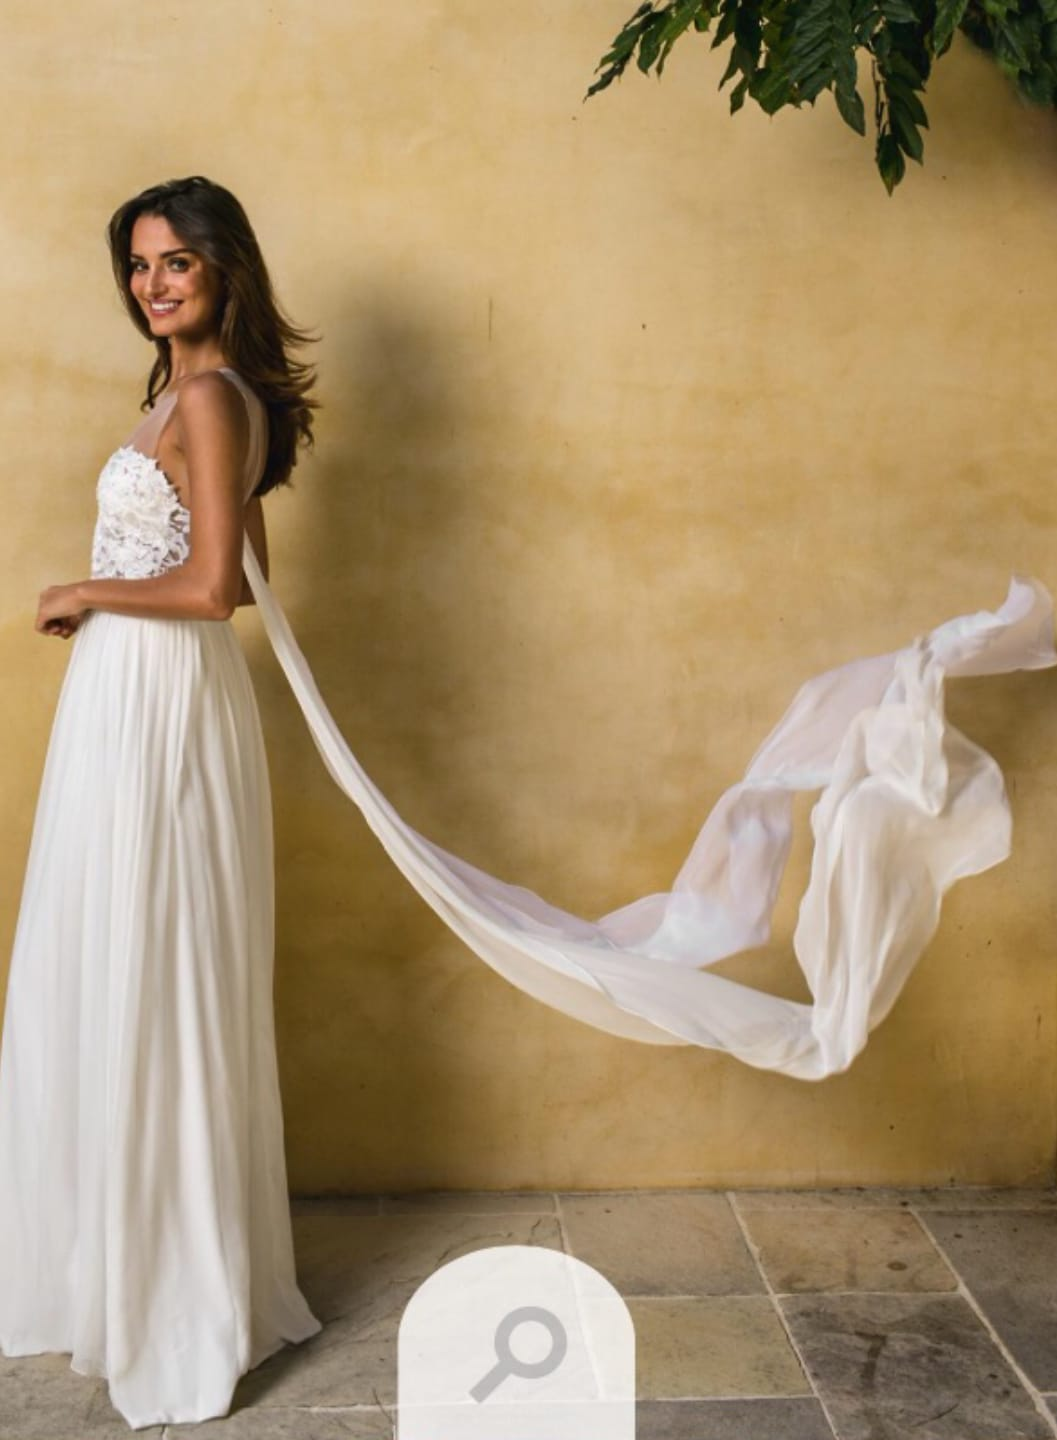 Bespoke Chiffon Ivory Wedding Dress for expectant bride